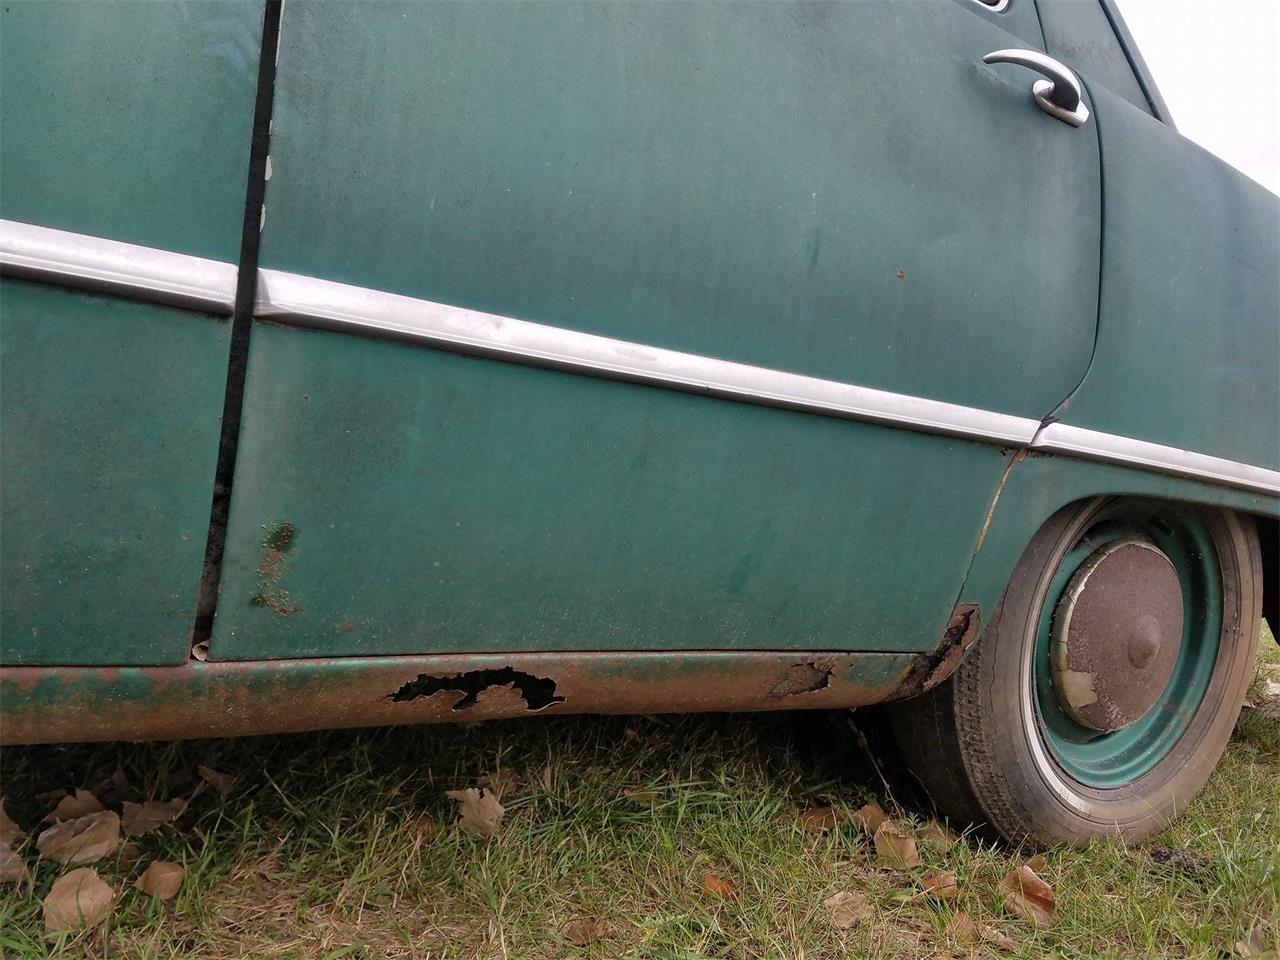 1949 Ford Sedan for sale in Thief River Falls, MN – photo 13